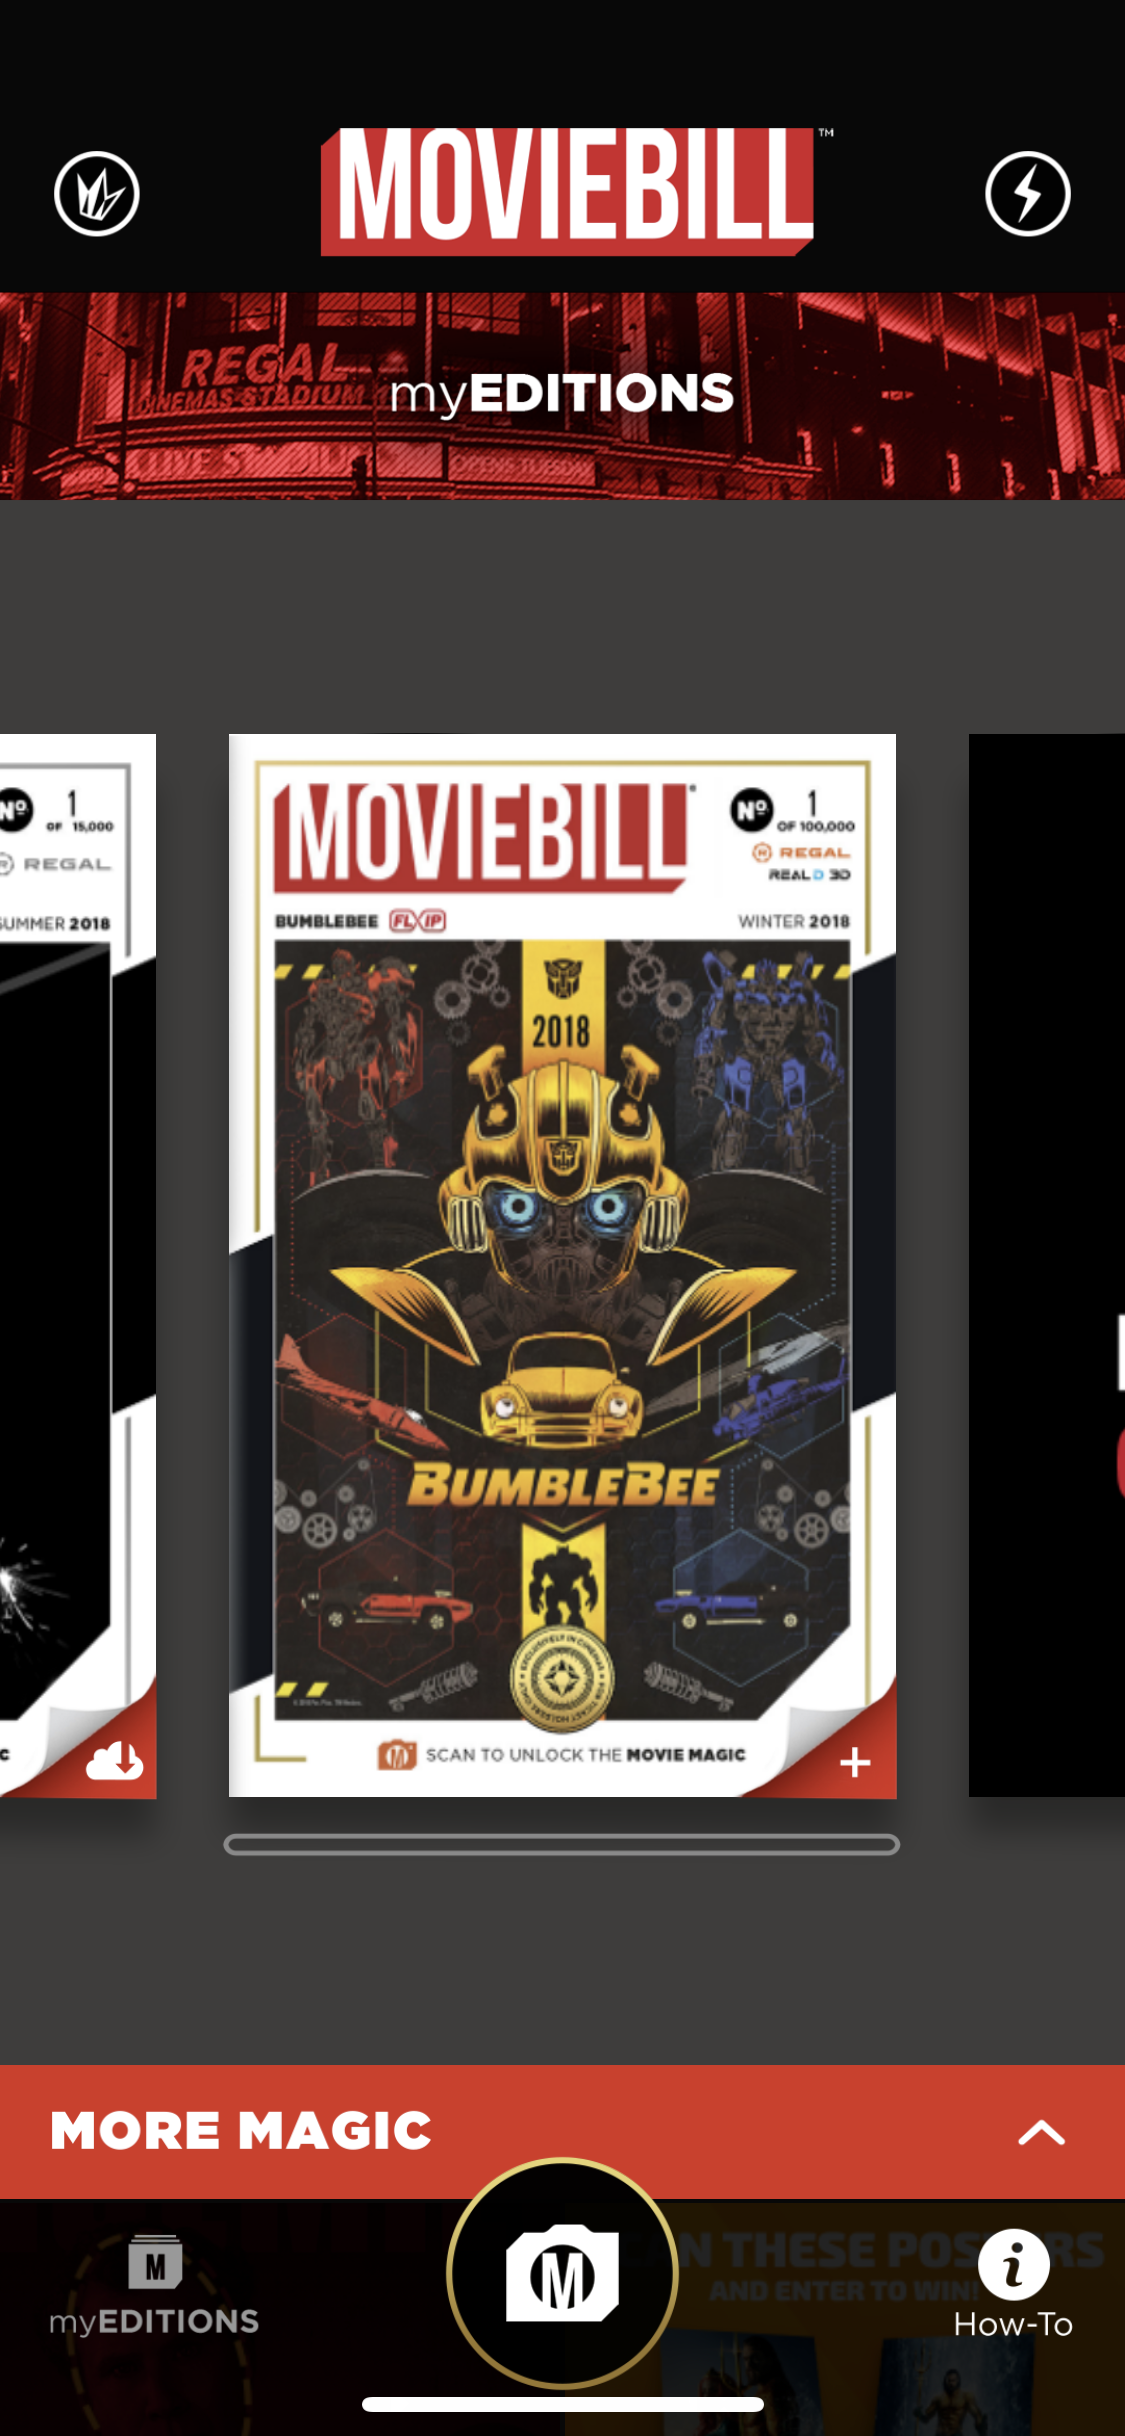 Moviebill App screenshot